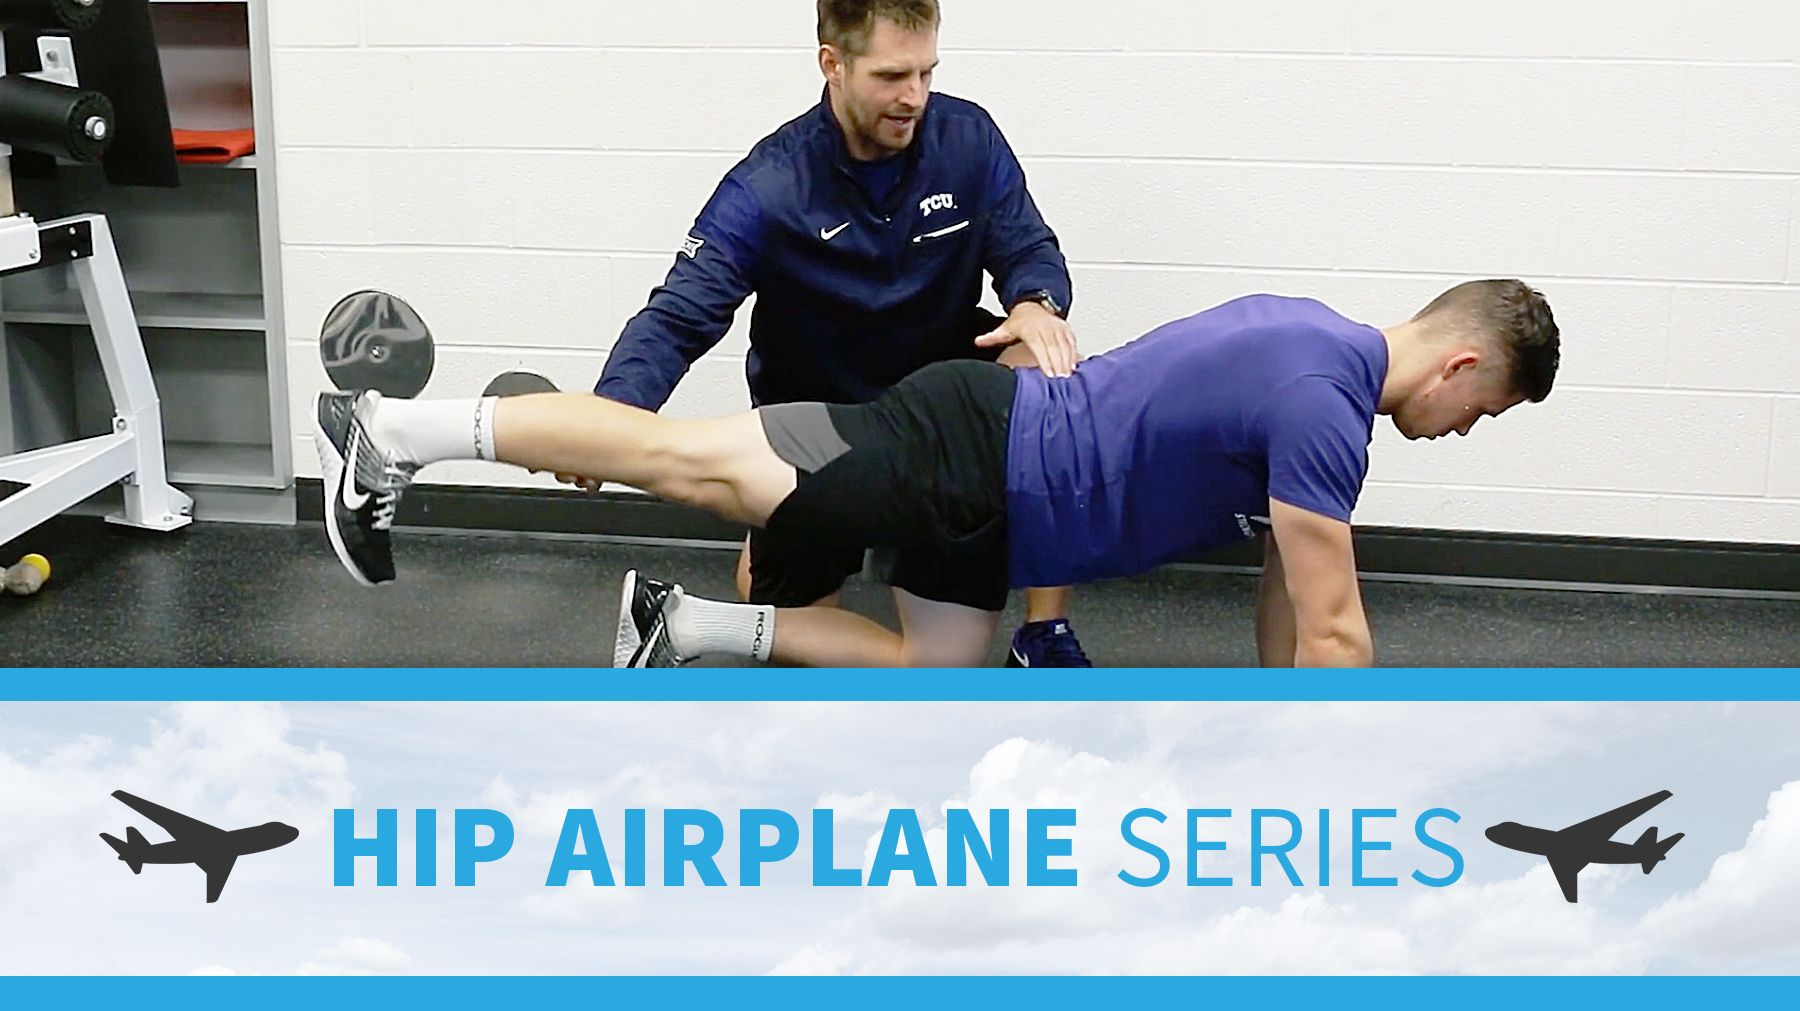 Hip Airplane Series For Pelvic Control Glute Activation And Rotational Hip Power The Art Of Coaching Volleyball Glute Activation Glutes Coaching Volleyball